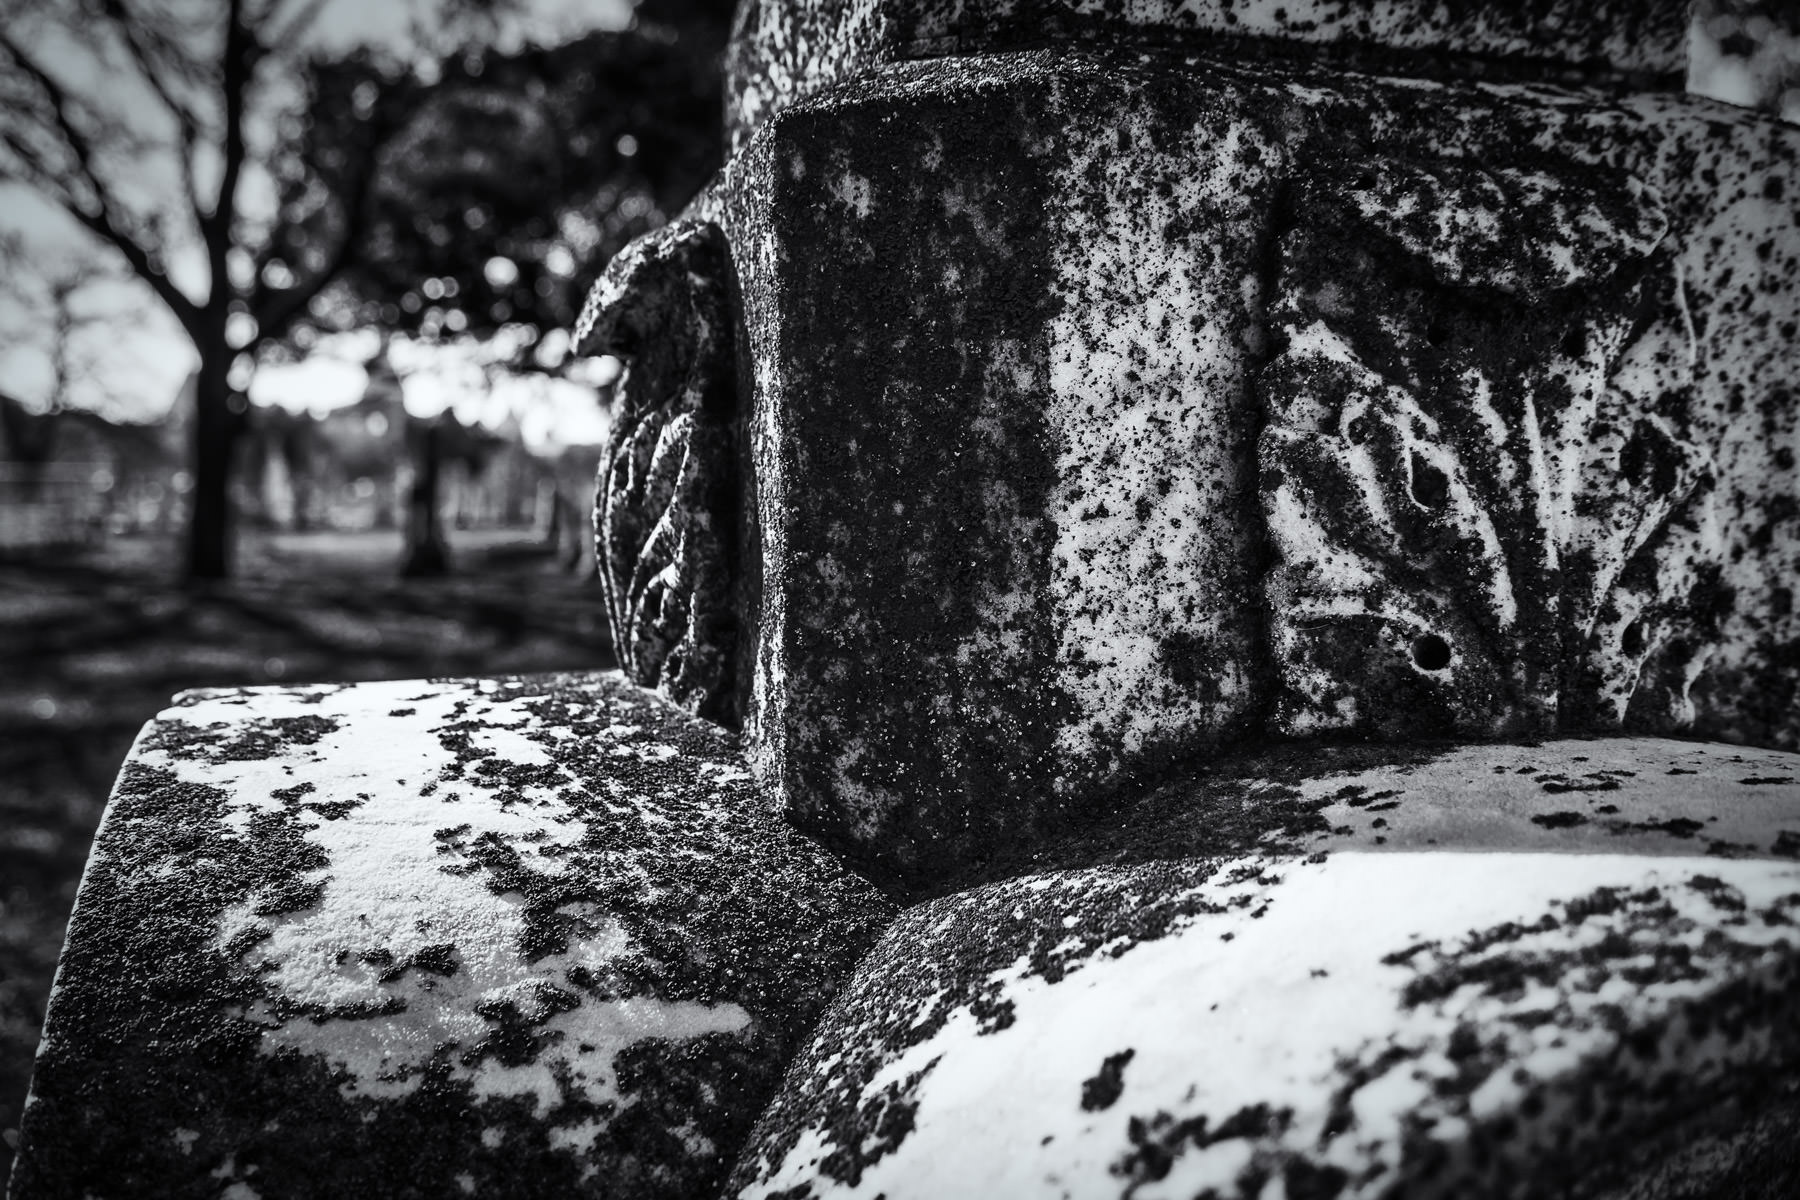 Lichens grow on a headstone at the First Street Cemetery in Waco, Texas.